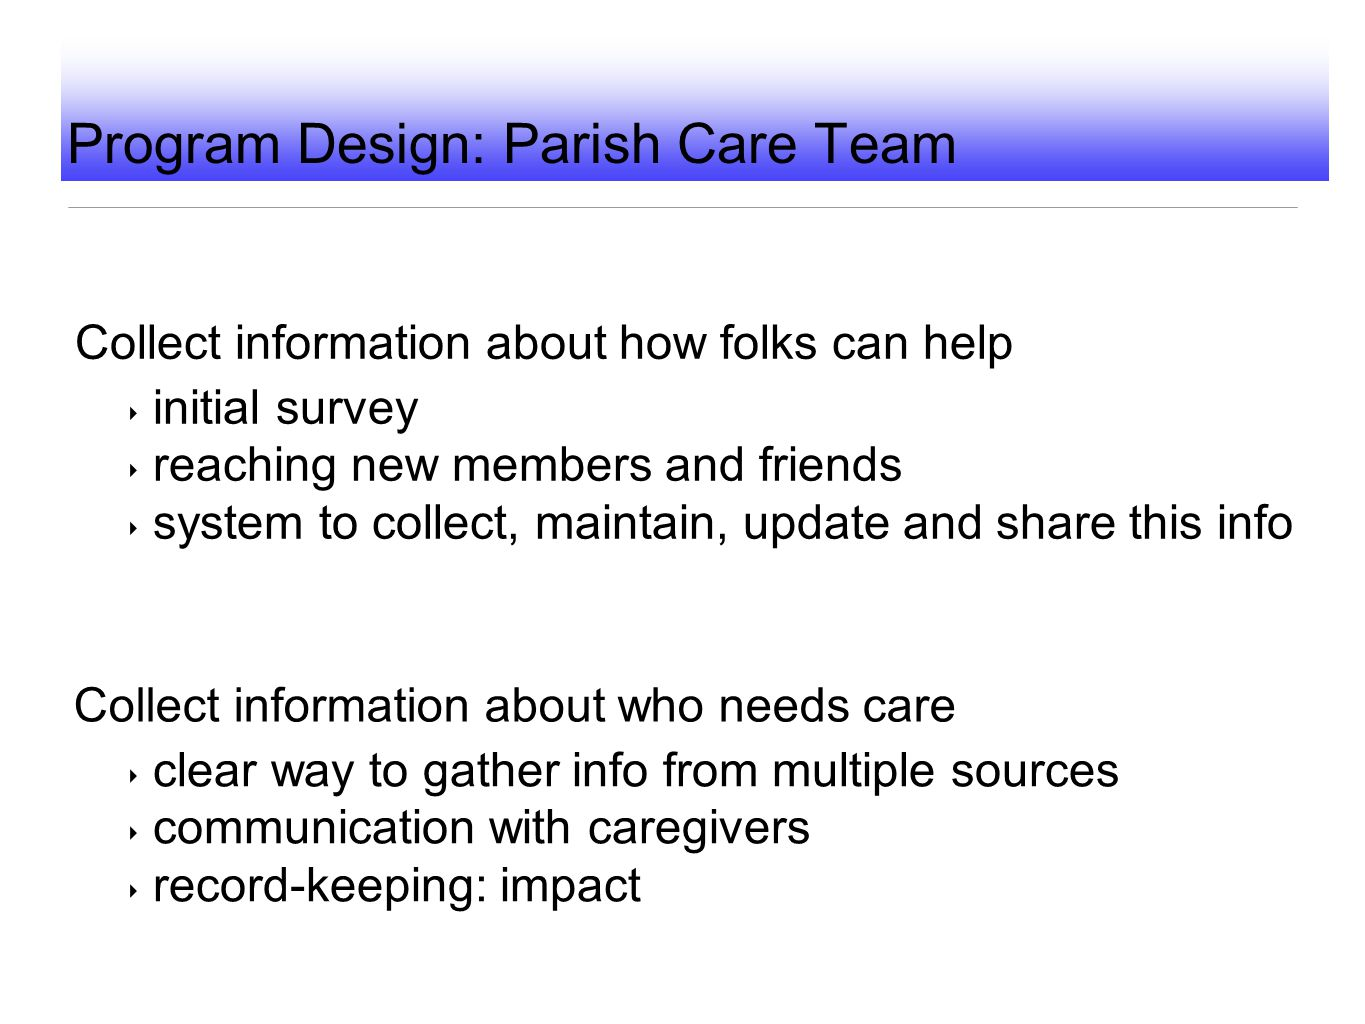 Program Design: Parish Care Team Collect information about how folks can help ‣ initial survey ‣ reaching new members and friends ‣ system to collect,